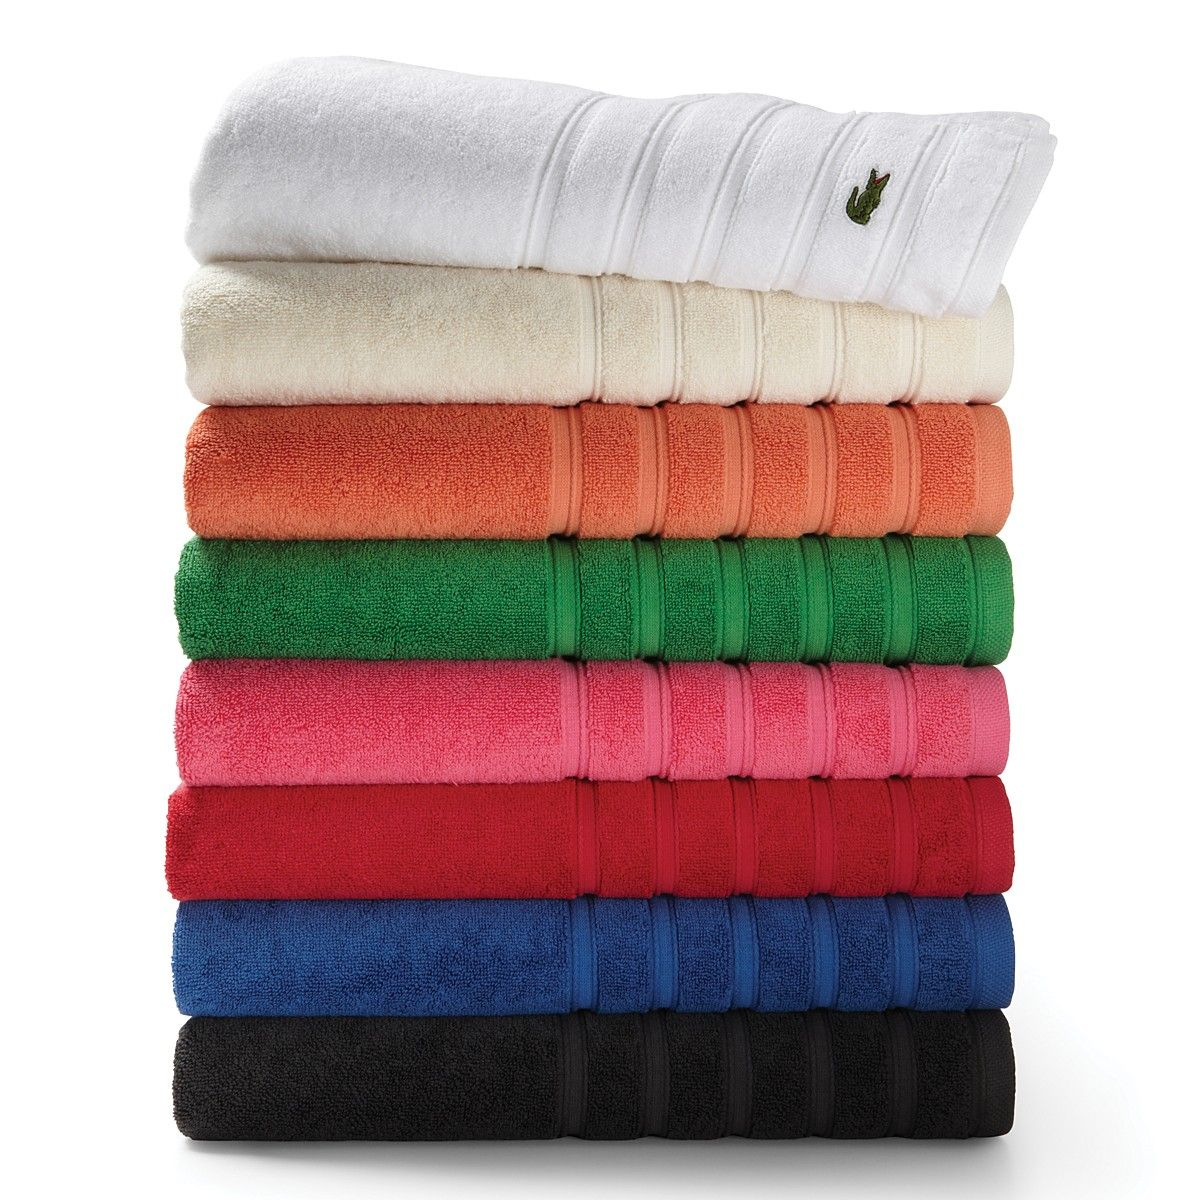 Lacoste Croc Bath Towels Bloomingdale S Towel Bath Towels